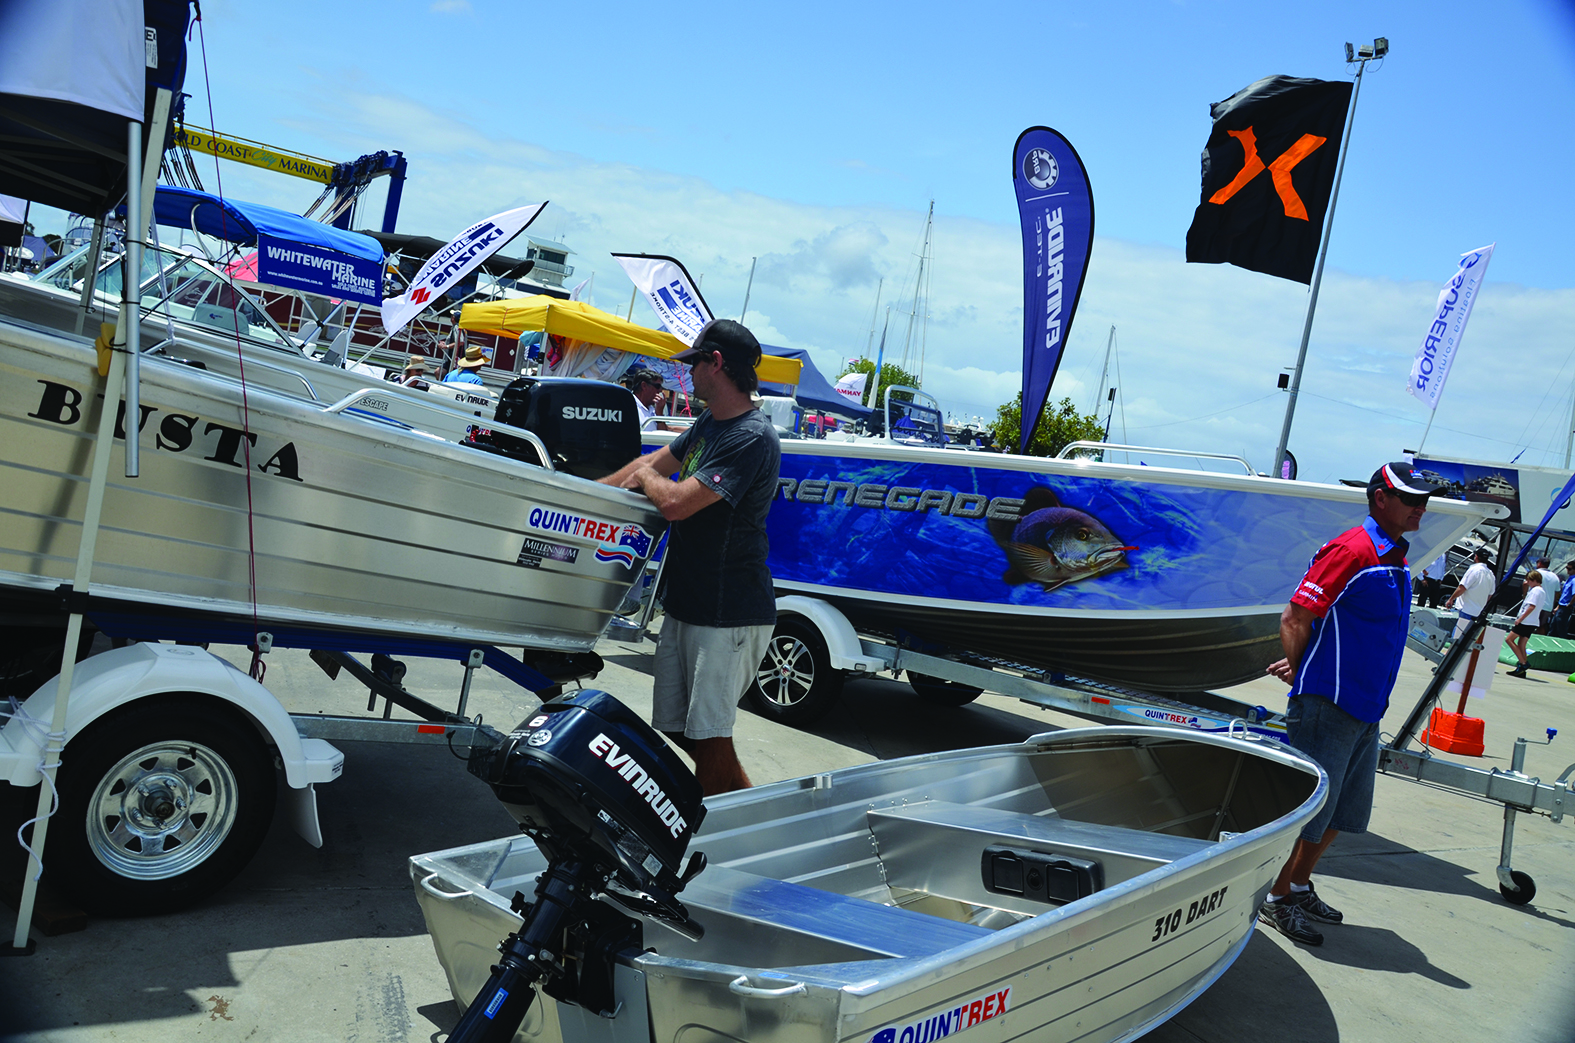 oats built for serious fishing or boats built for serious fun – you will find exactly what you need to get out on the water making special memories your way at Expo 2016.